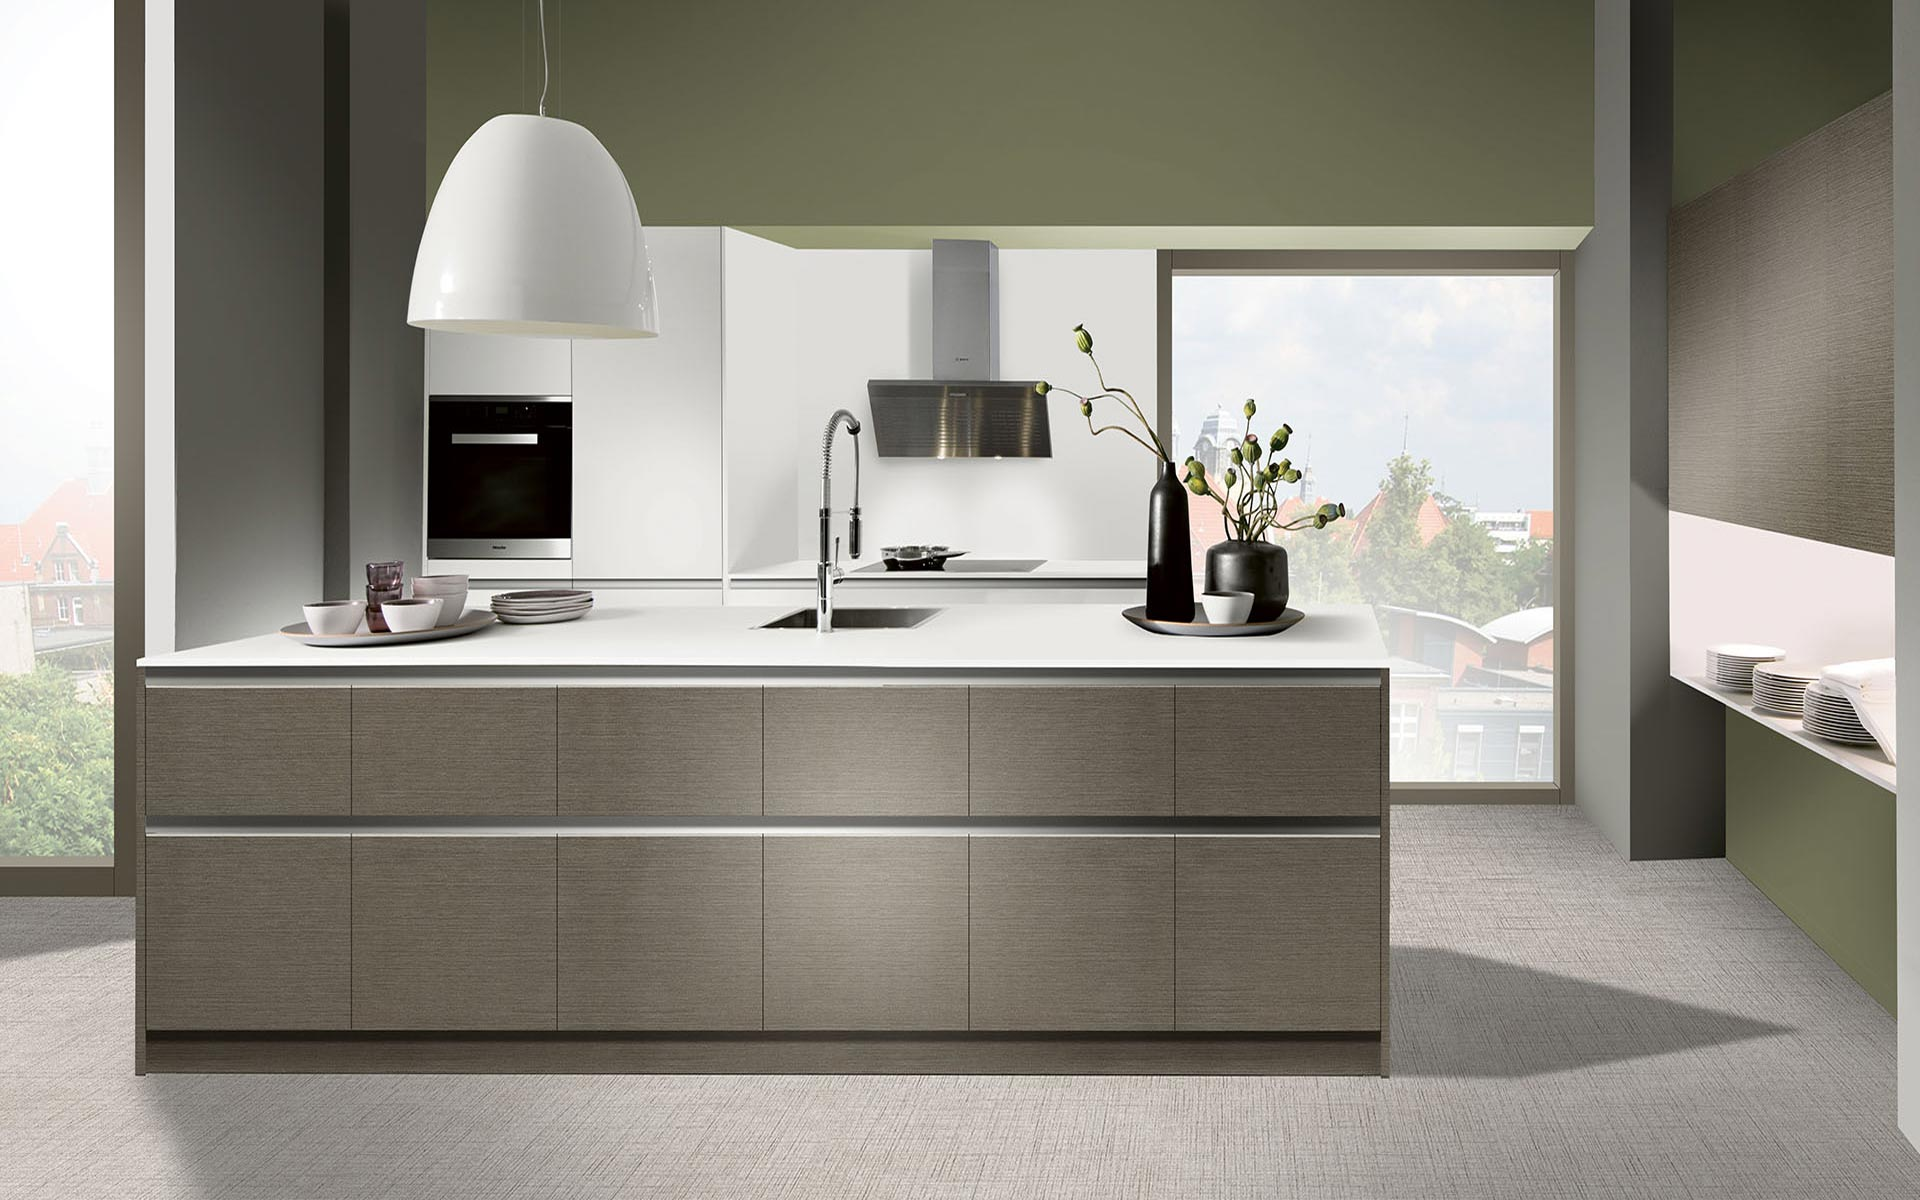 Toronto: Kitchens from Germany, Europe. Metall Umbra Hell • Touch Bianco